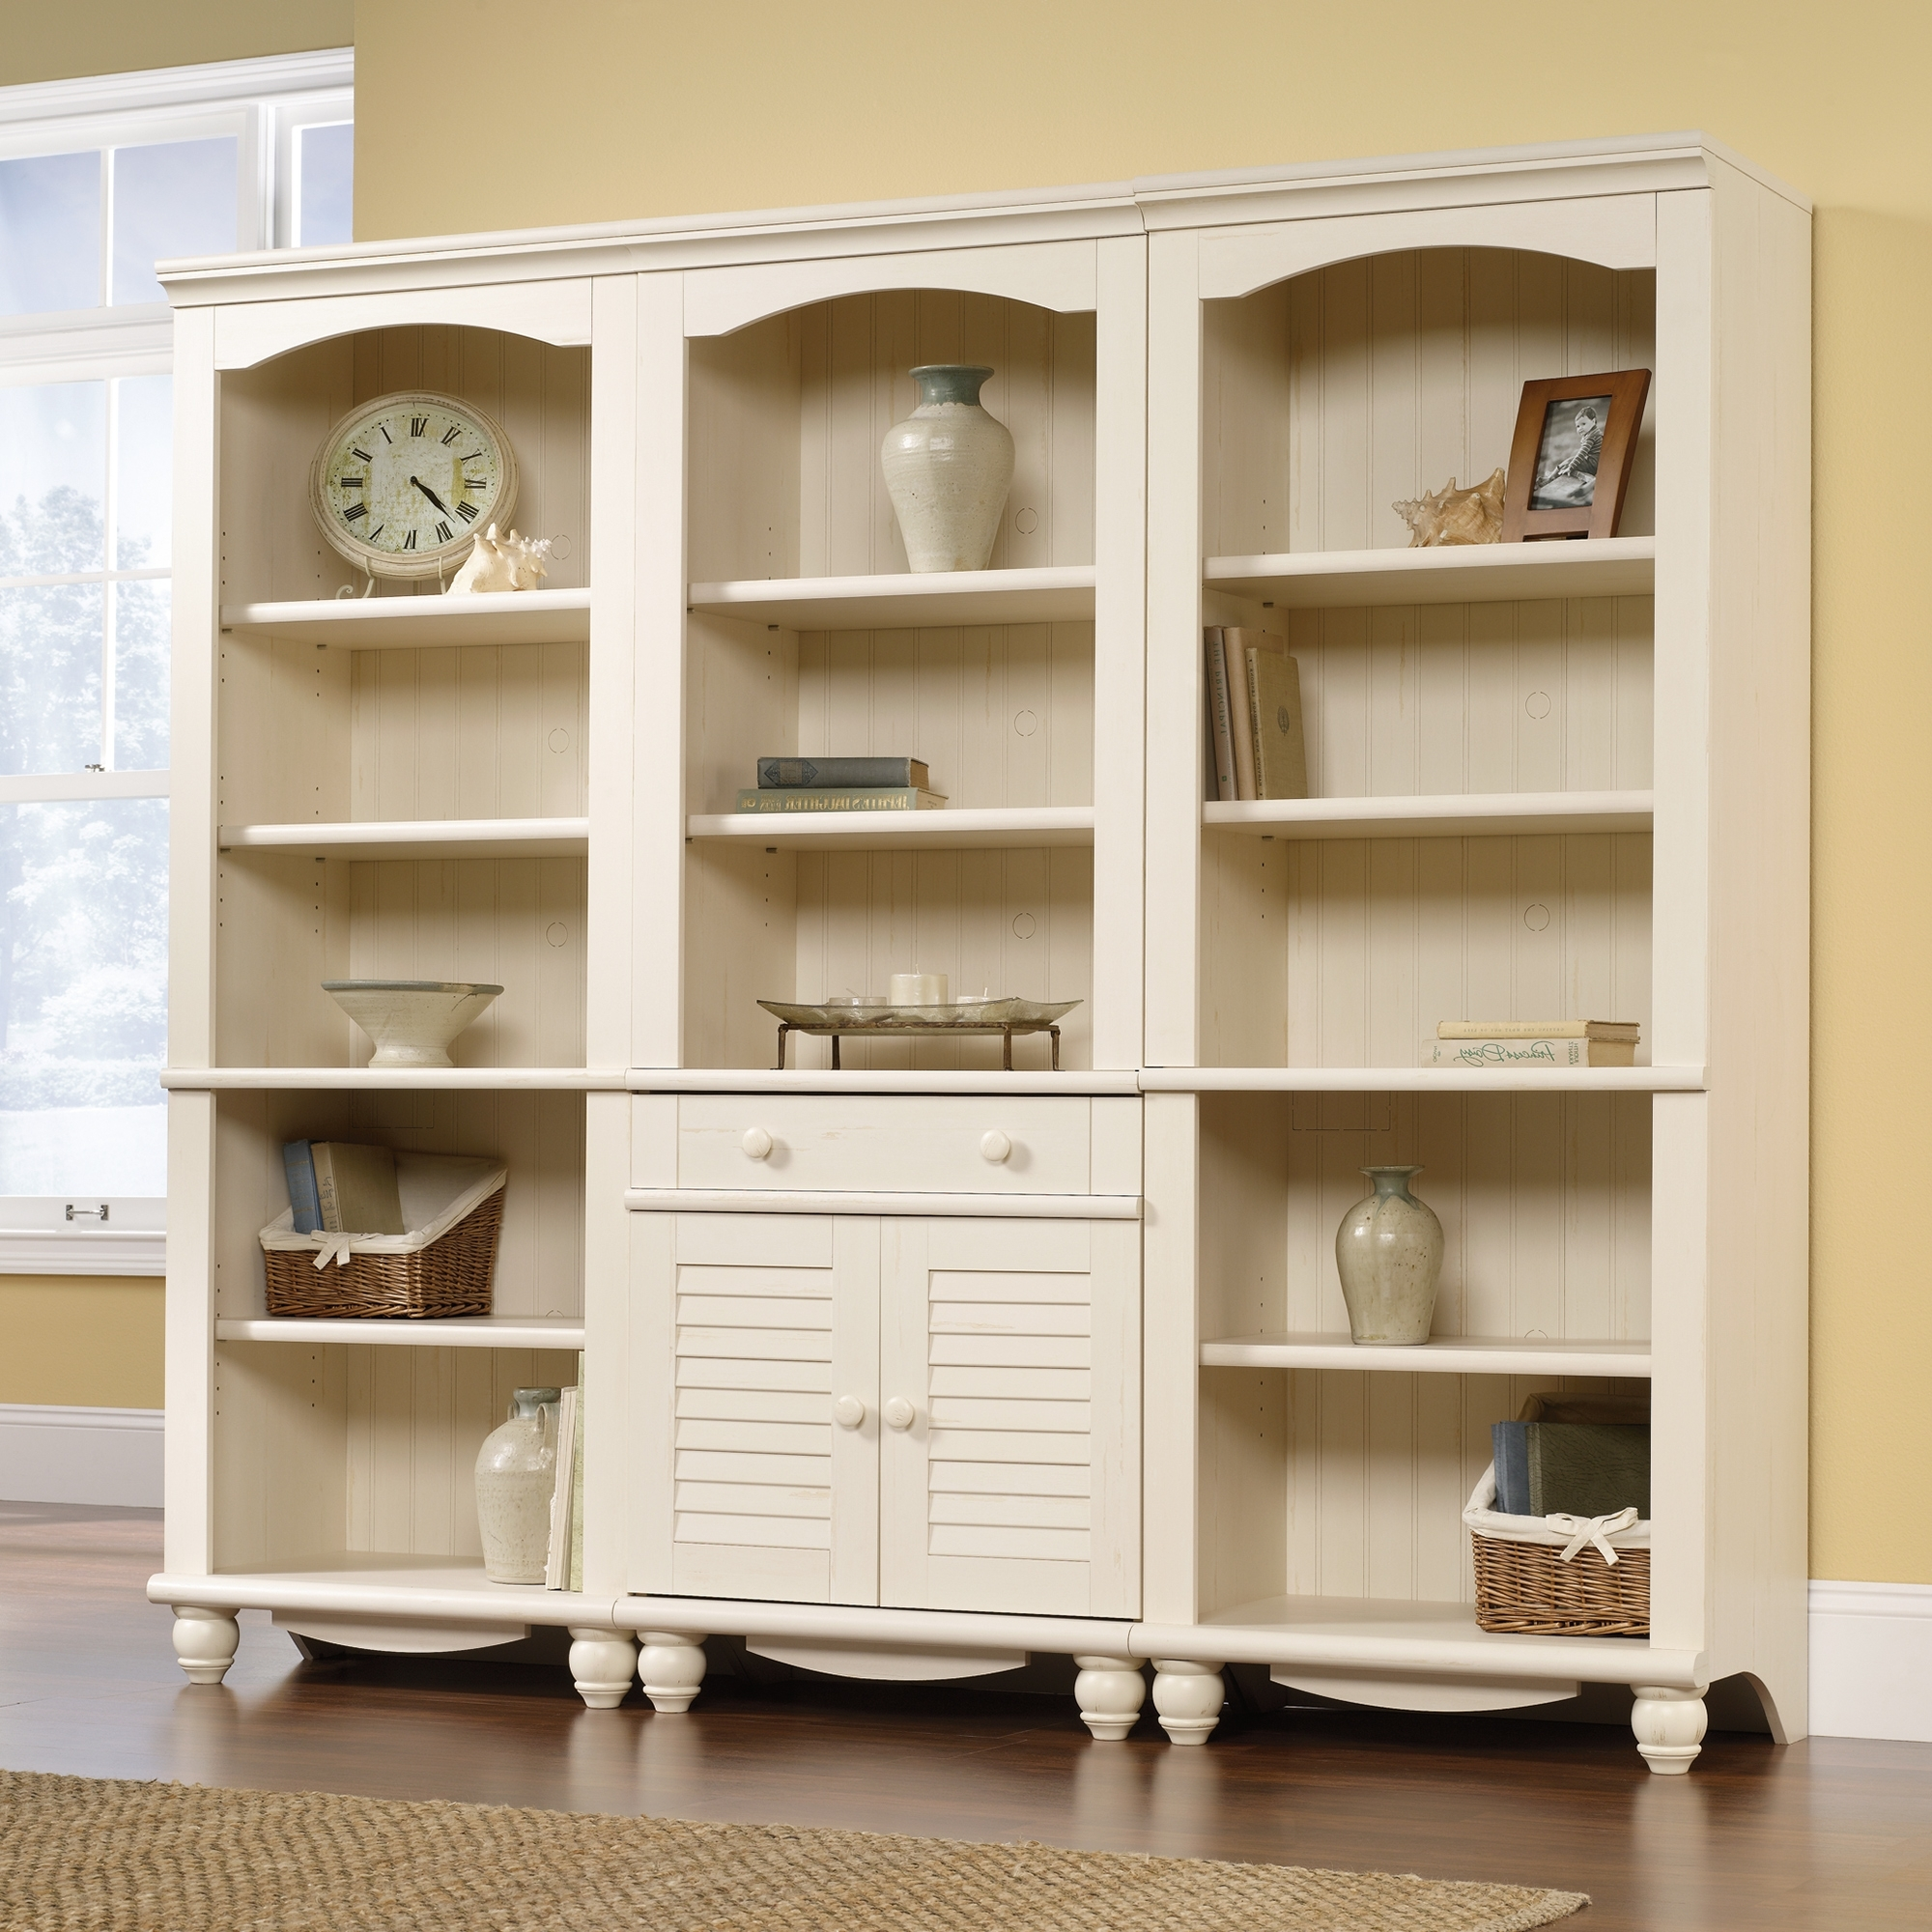 Sauder Regarding 2017 Wall Library Bookcases (View 15 of 15)